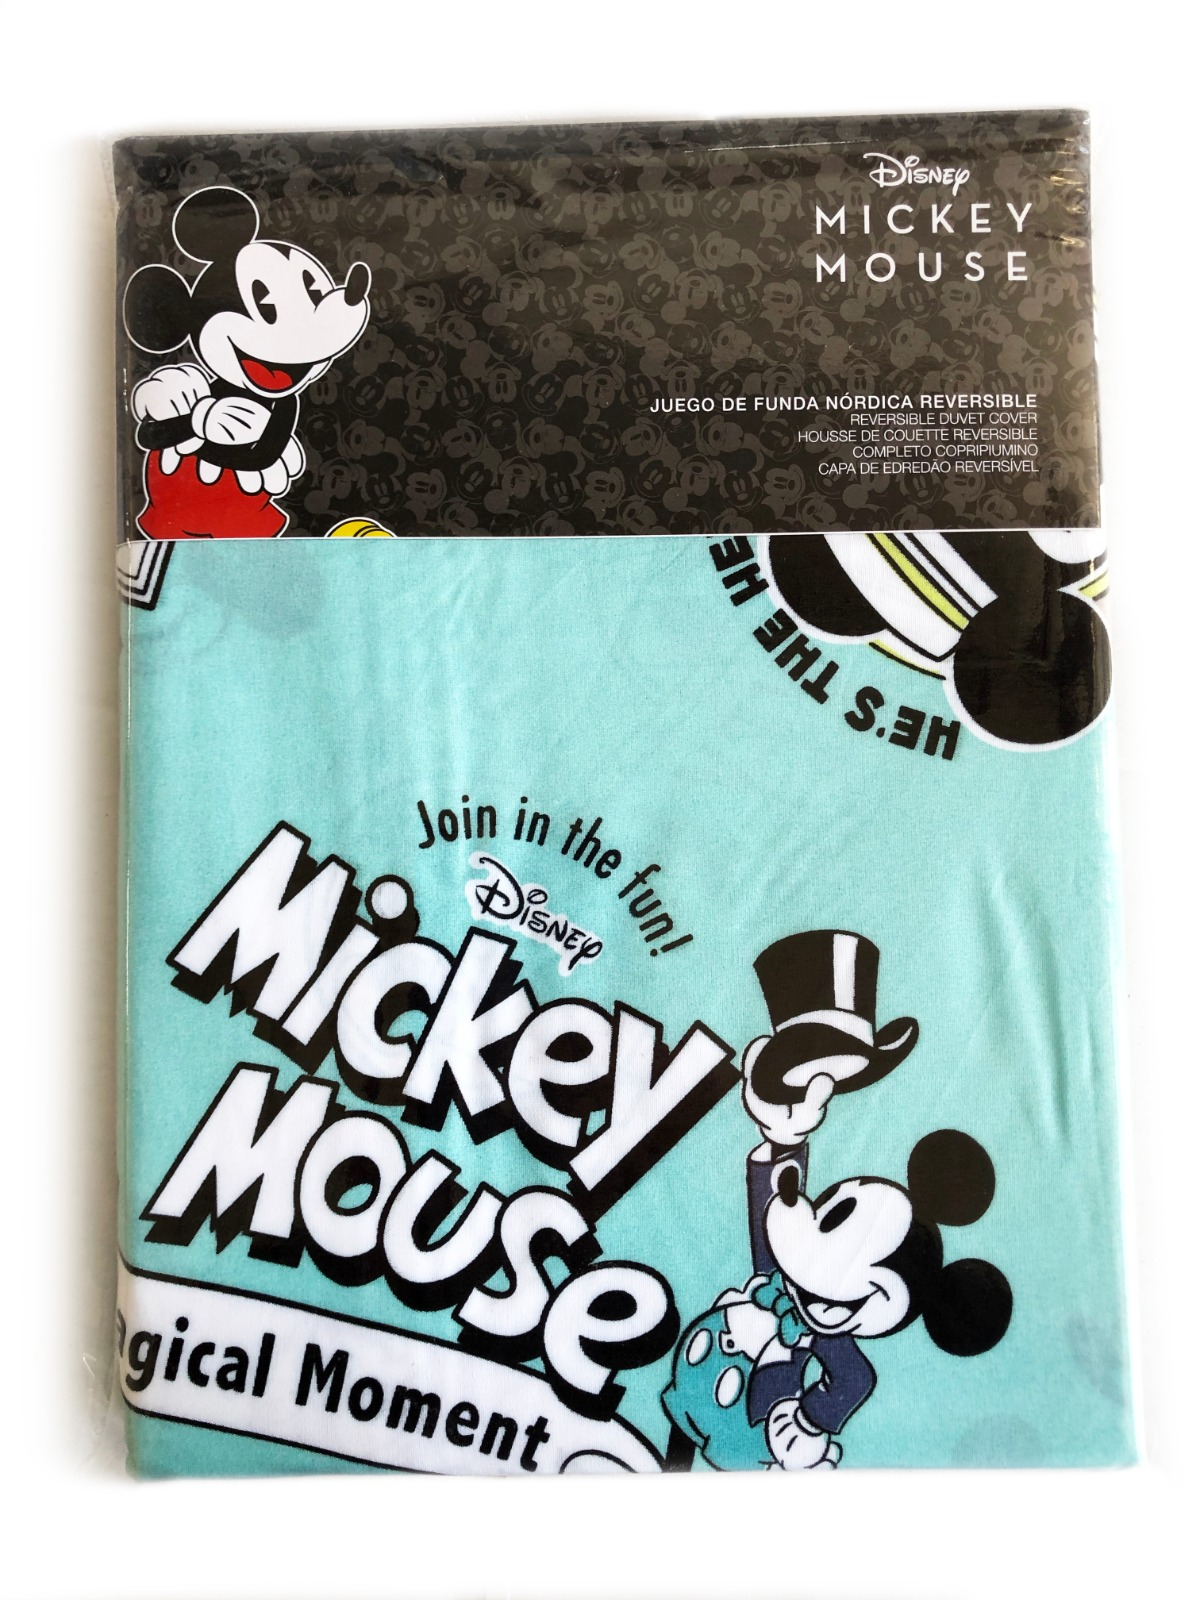 Funda Nórdica Reversible 2pz. Mickey